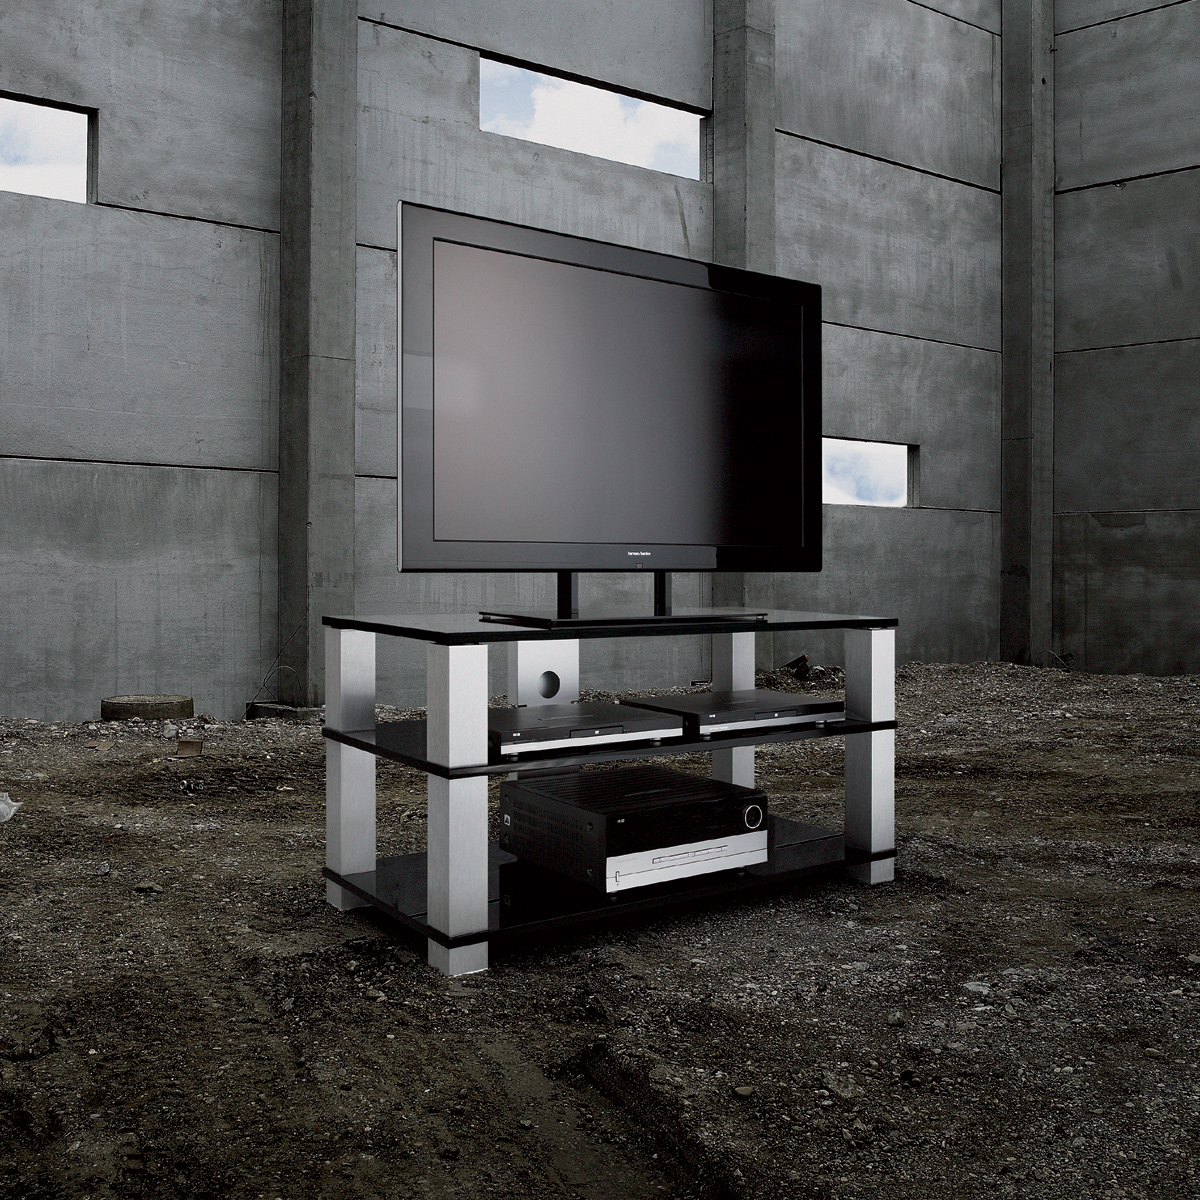 spectral panel archive tv m bel und hifi m bel guide. Black Bedroom Furniture Sets. Home Design Ideas